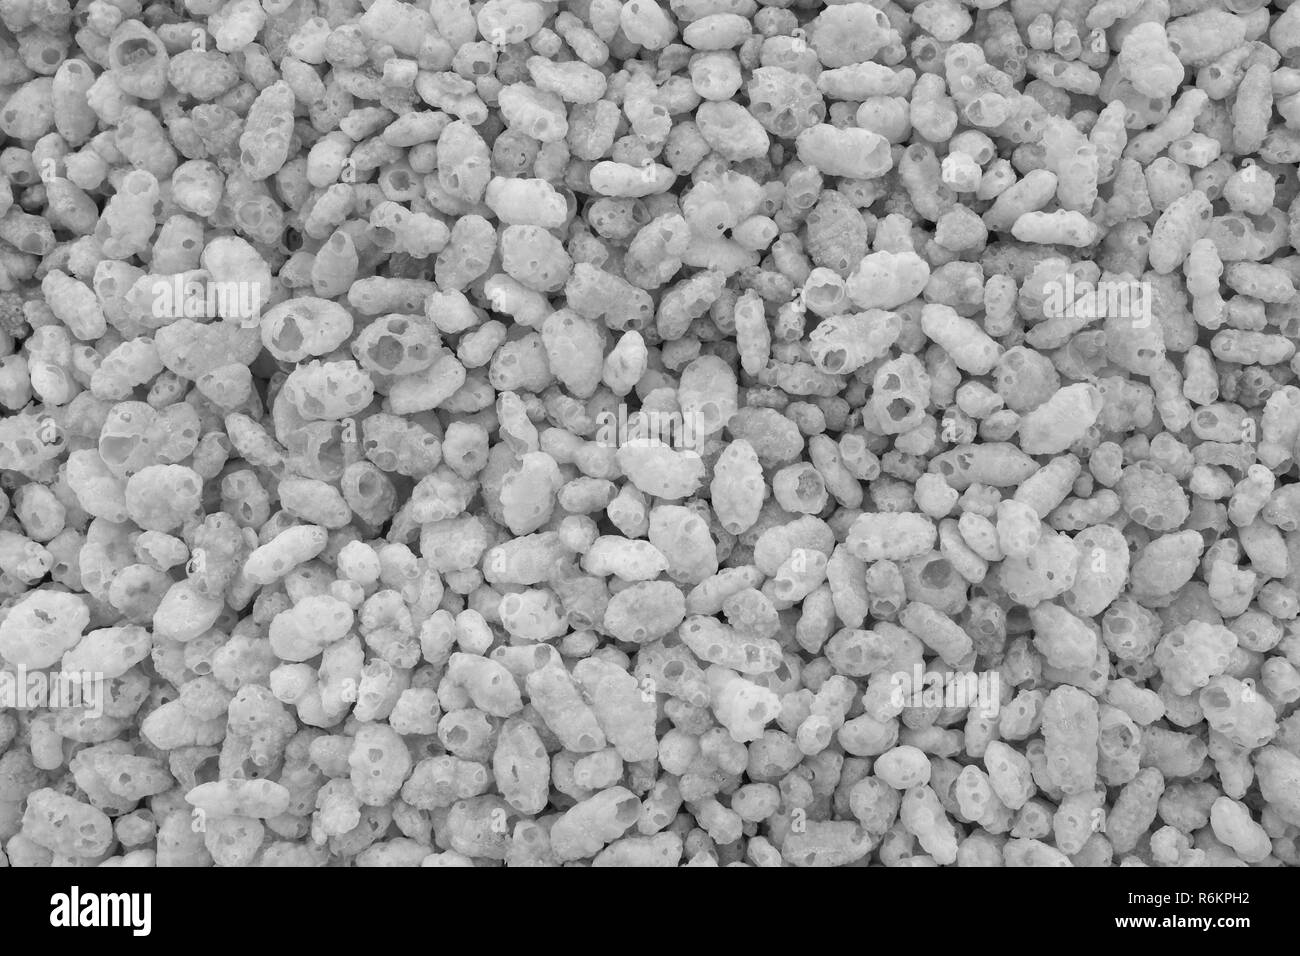 Crisped puffed rice breakfast cereal background - Stock Image